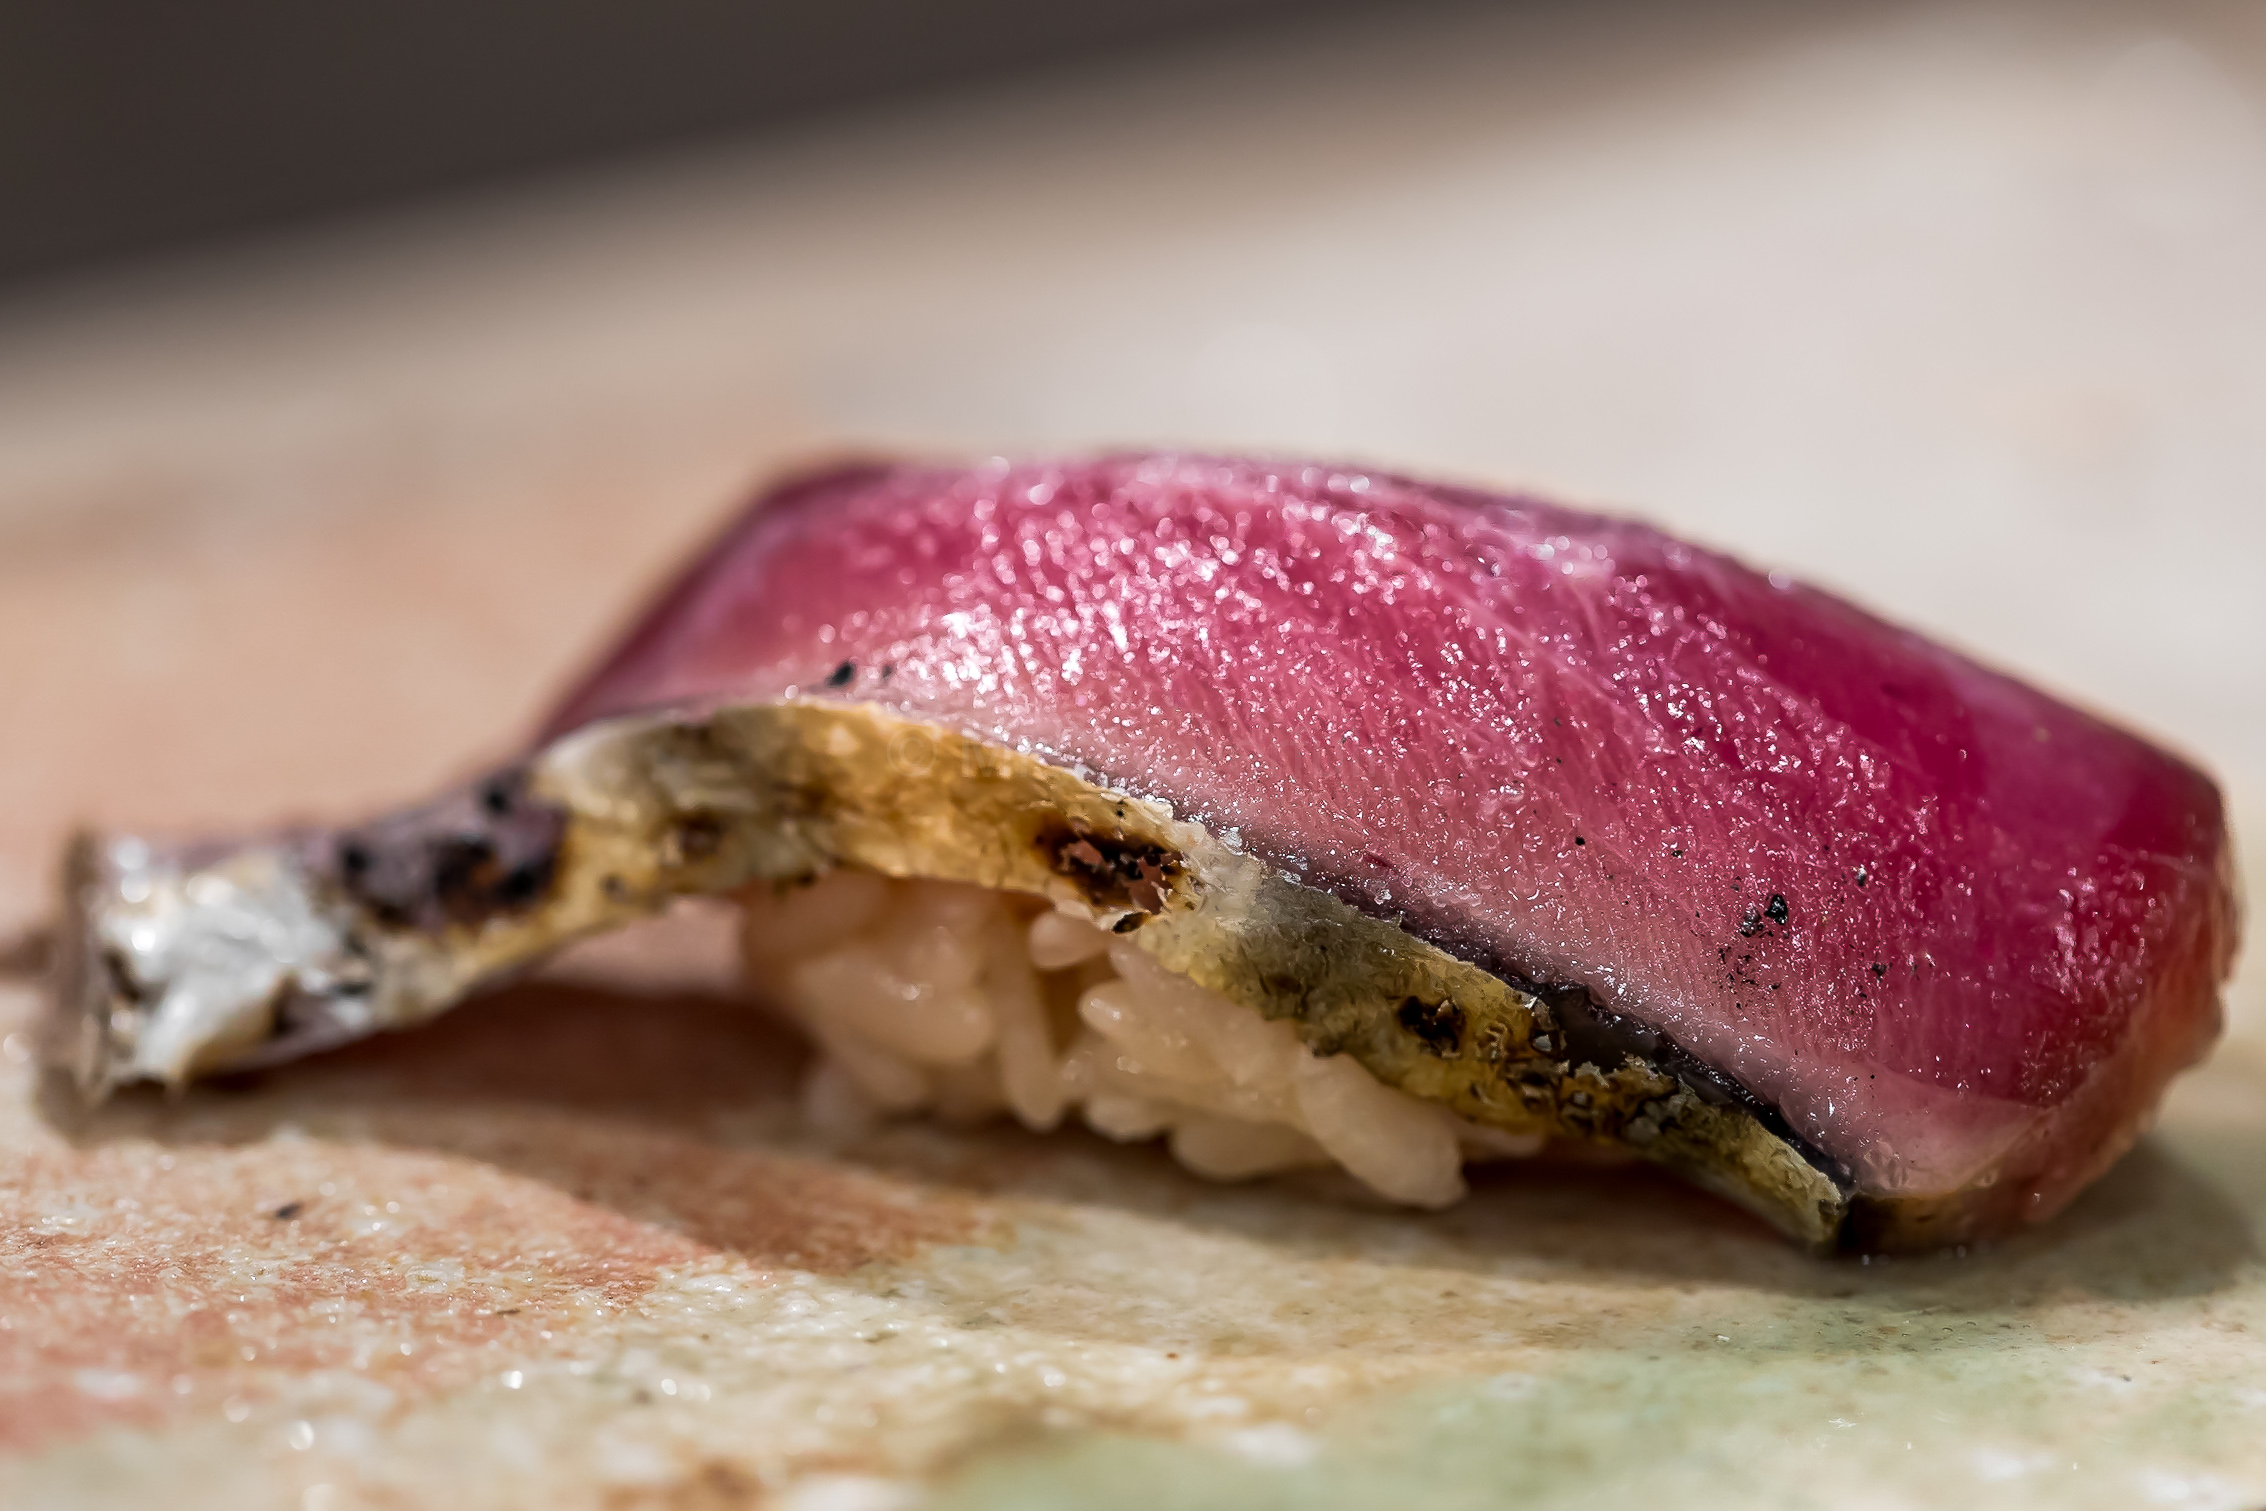 4. Katsuo with shio 千葉 - freshly grilled at the counter, the skin was so crispy and delicious even this (May) was not the best Katsuo season